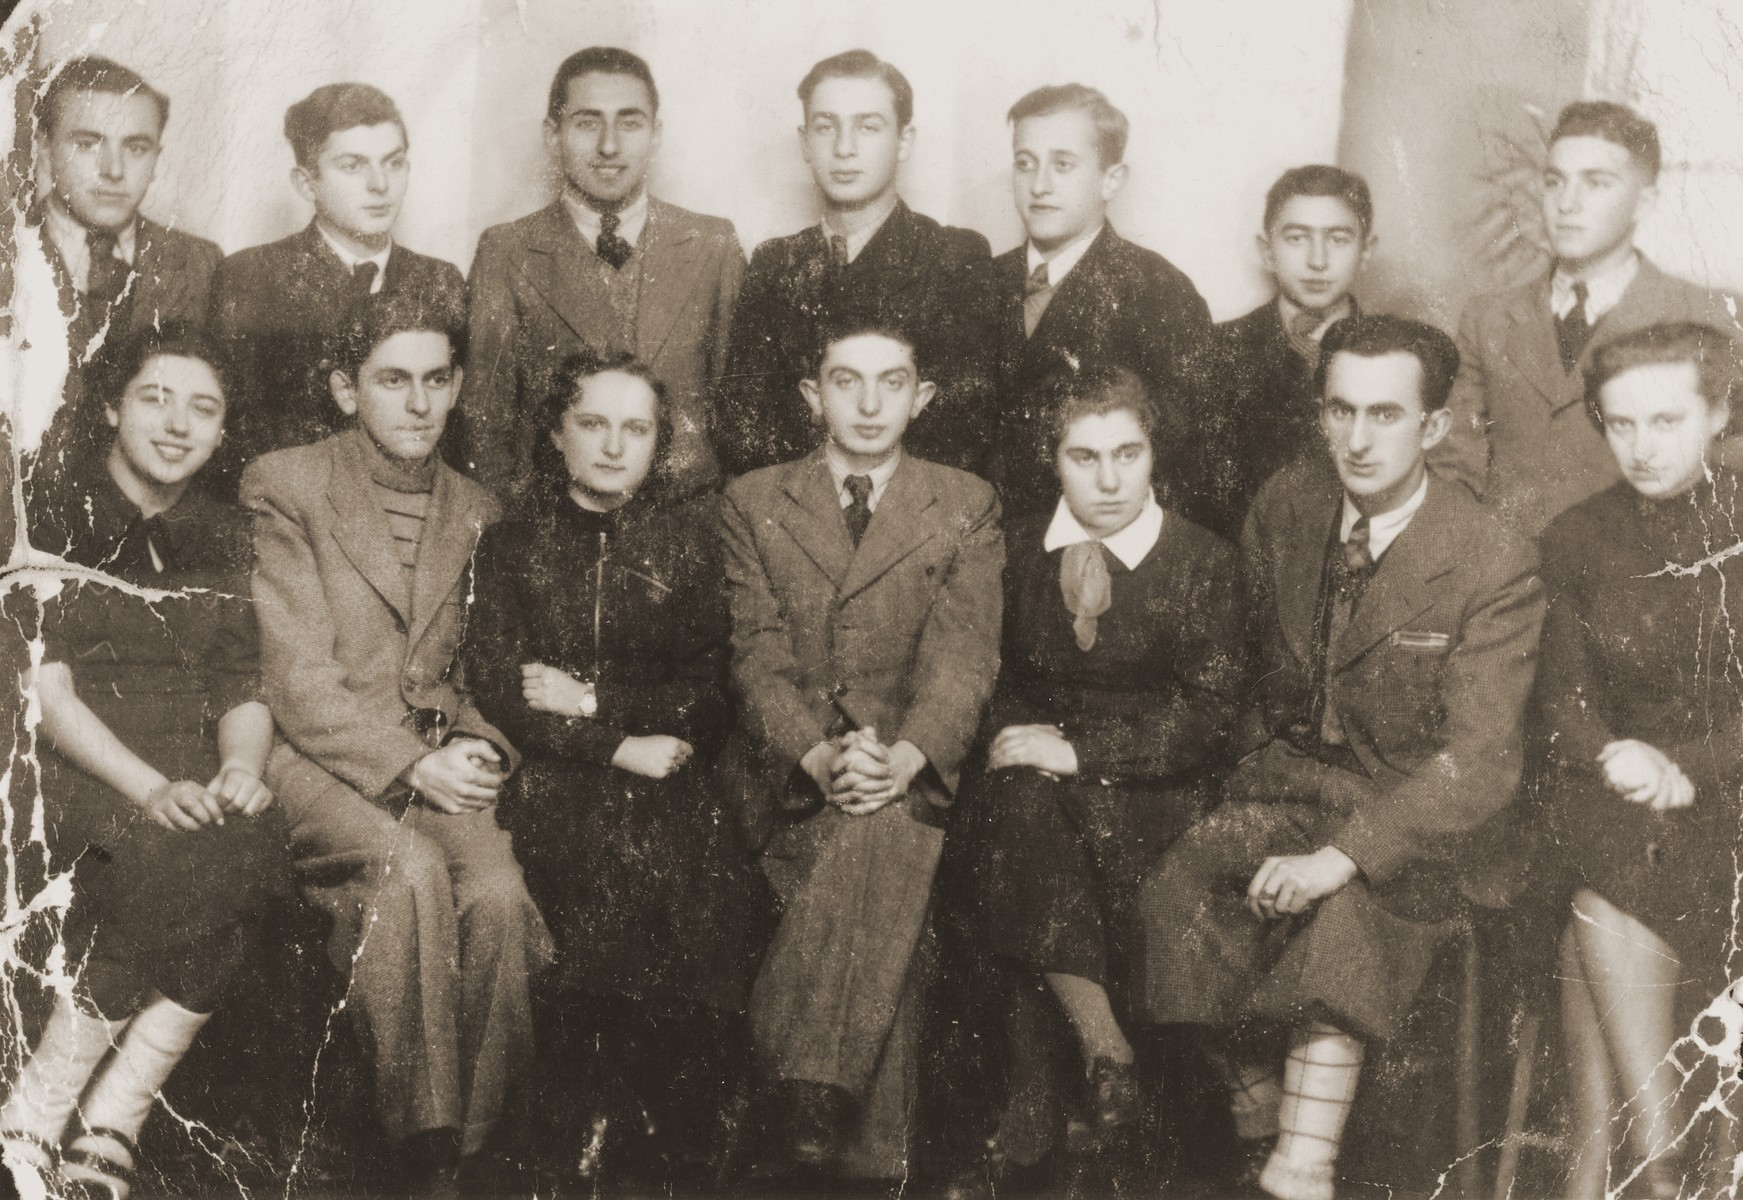 Group portrait of members of the Achvah Akademicka Jewish student organization in Brody, Poland.  Pictured in the top row, left to right, are: Jacob Tomaszower; Sigmund Hochberg; Mr. Klepper; Jonah Zuckerman; Olek Mollet; Julius Langerwitz; and Munio Pfeffer. Seated in the front row, left to right, are: Syda Broczyner; Mr. Striecher; Blanka Levin; unknown; Bianka Lillian; unknown; and unknown.